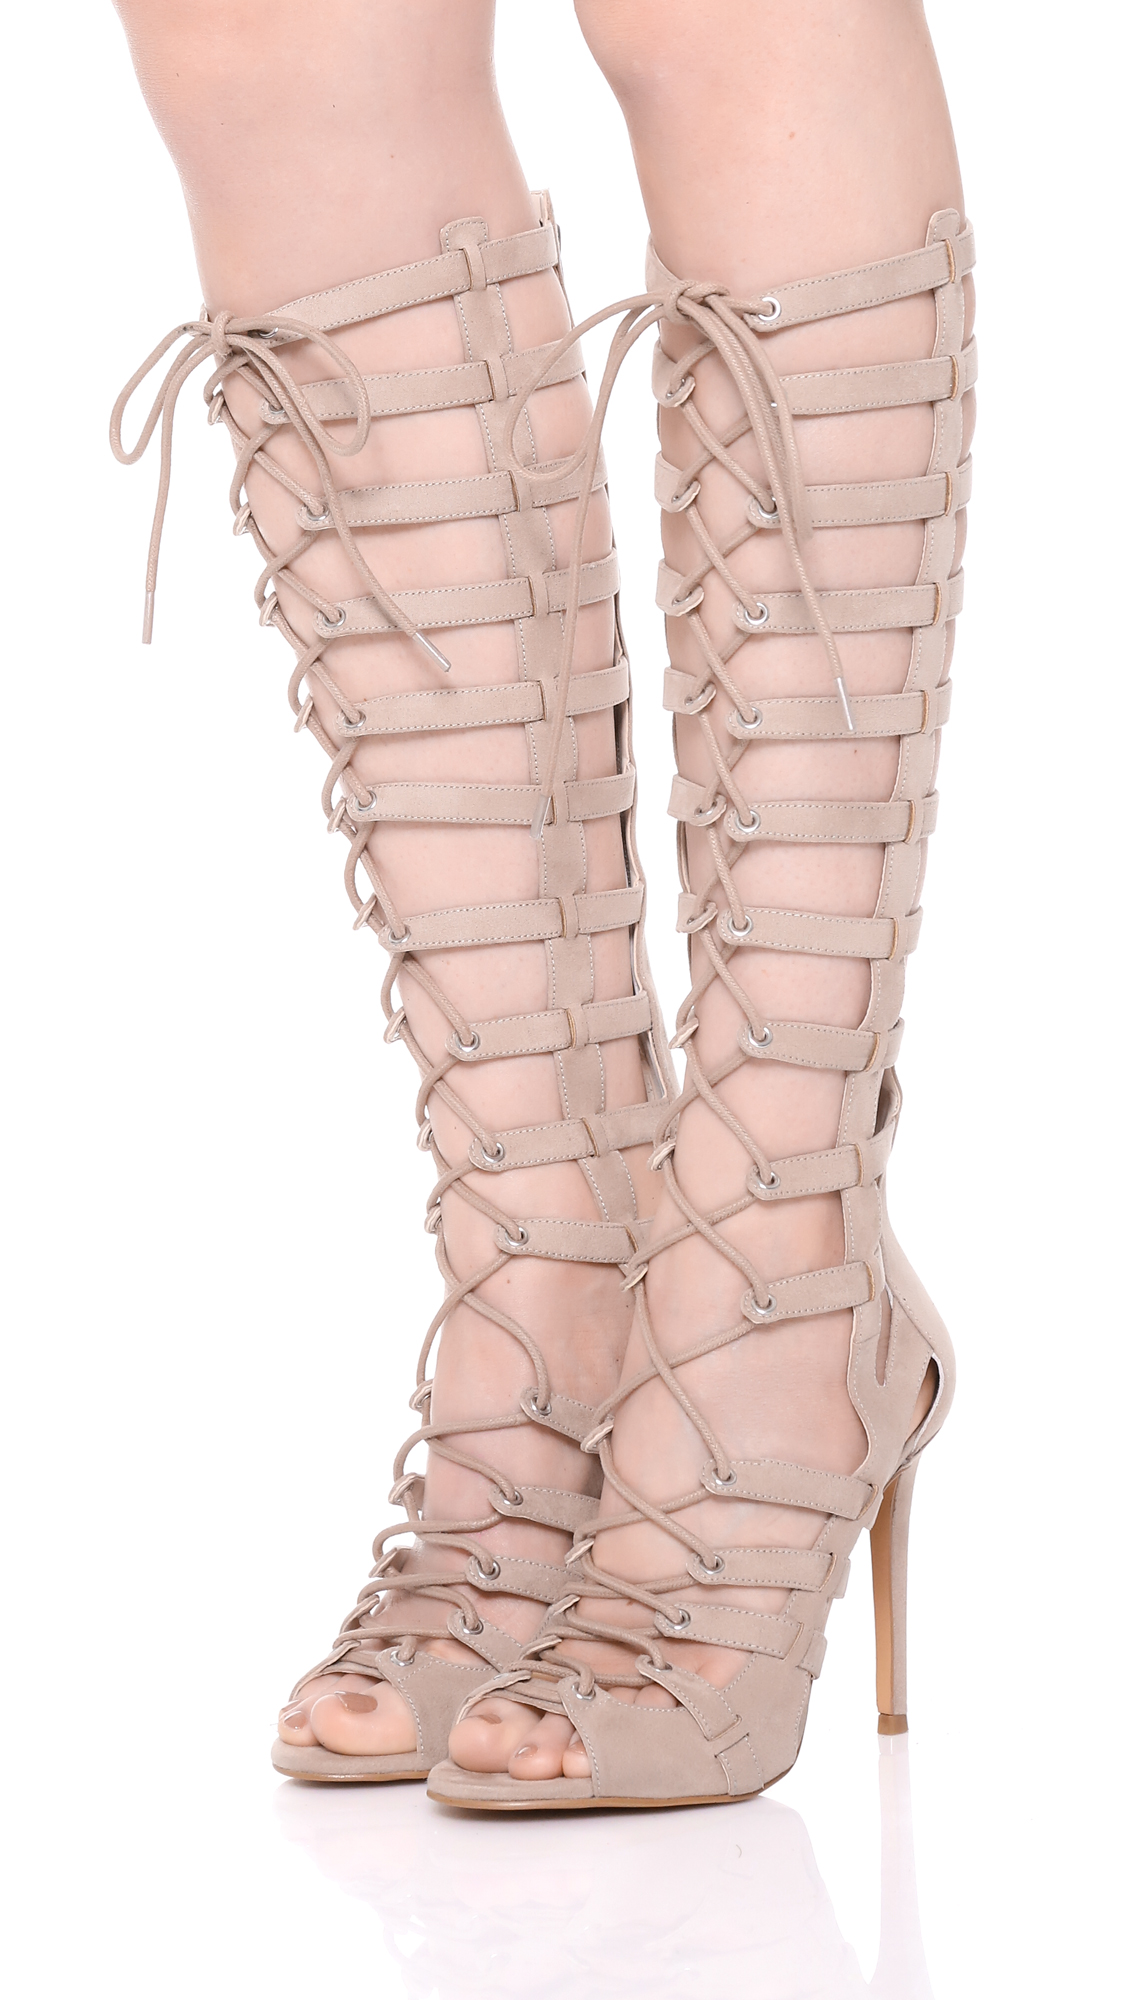 ed6940ac0958 KENDALL + KYLIE Emily Lace Up Sandals